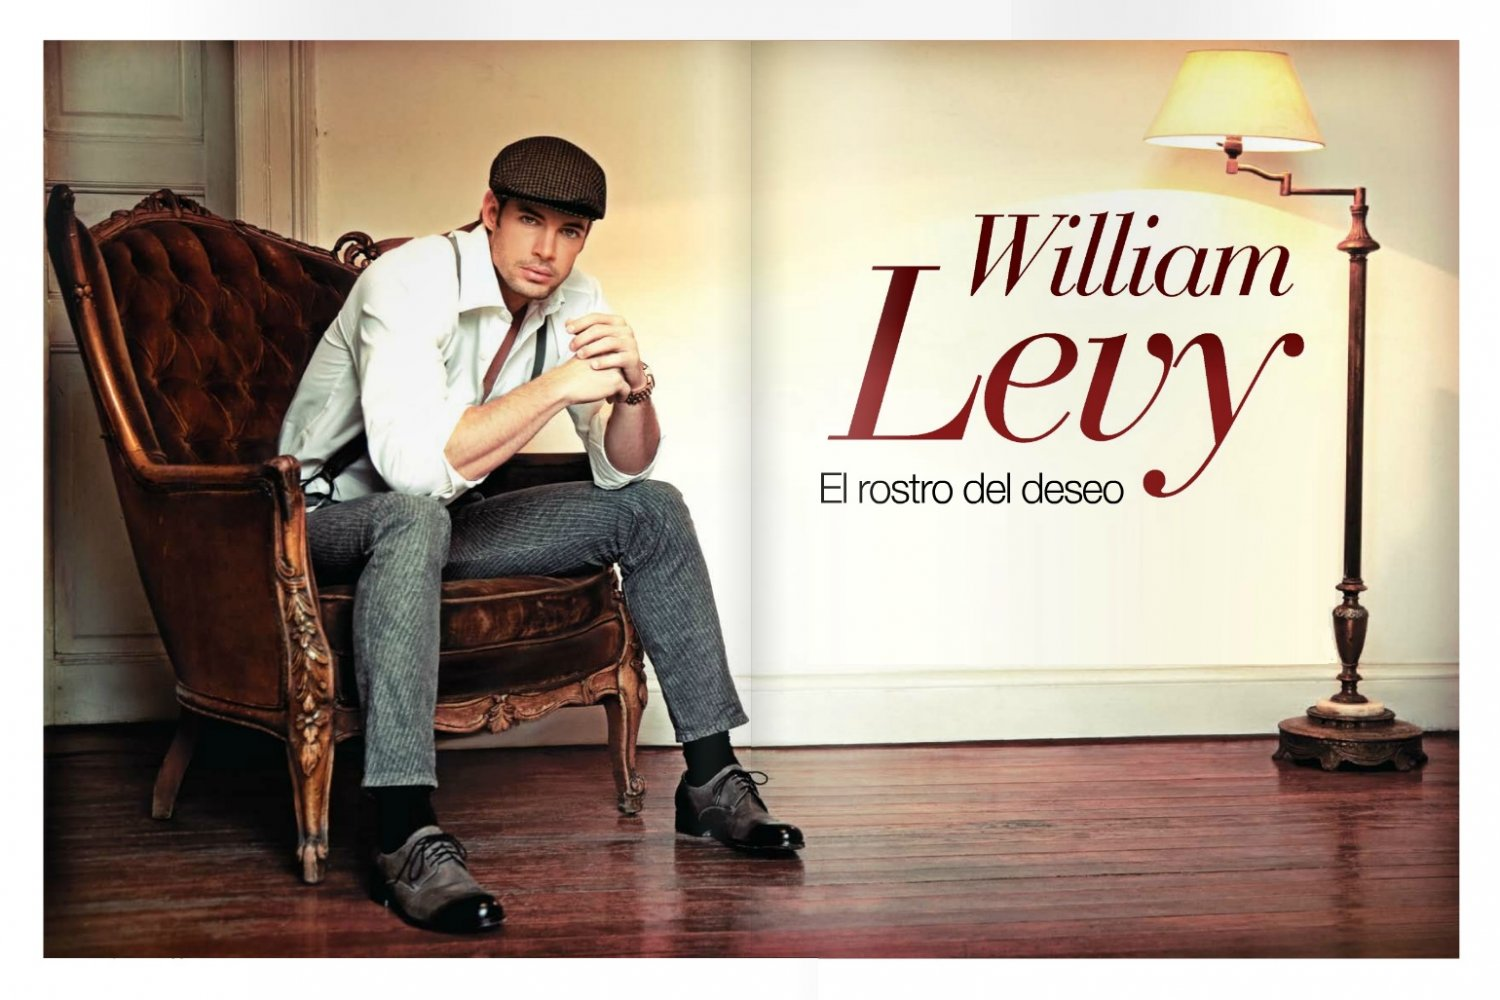 William Levy photo #445920